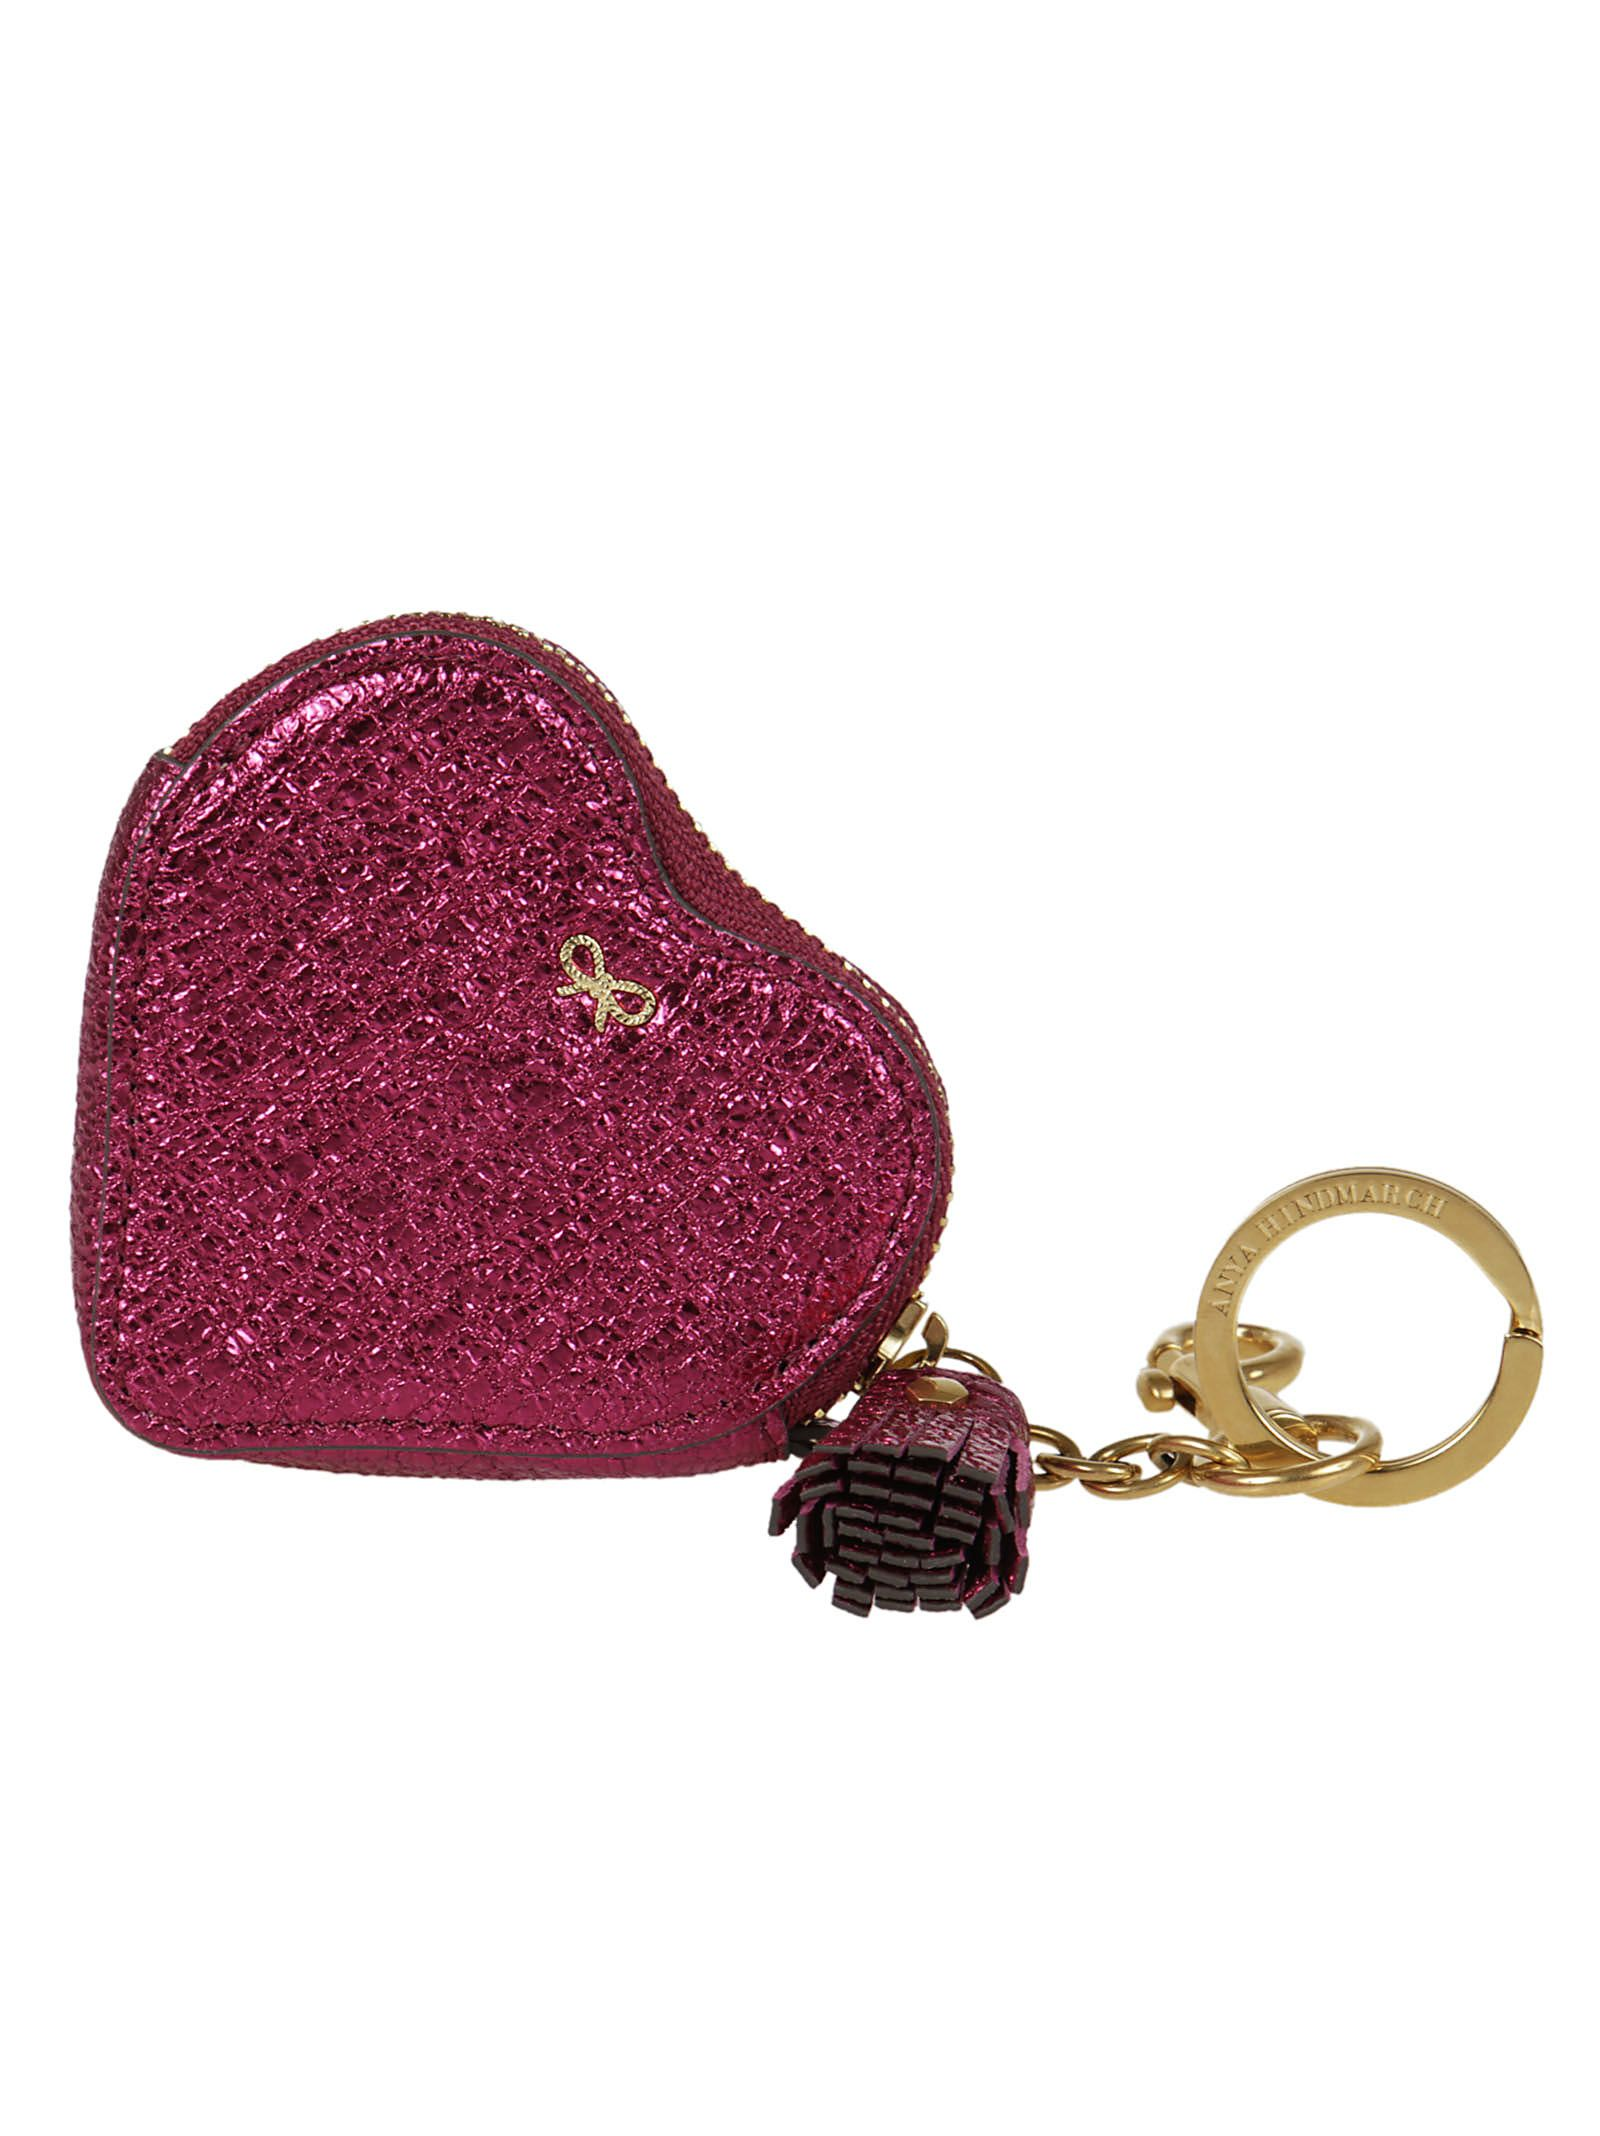 Anya Hindmarch Crinkled Metallic Heart Coin Purse